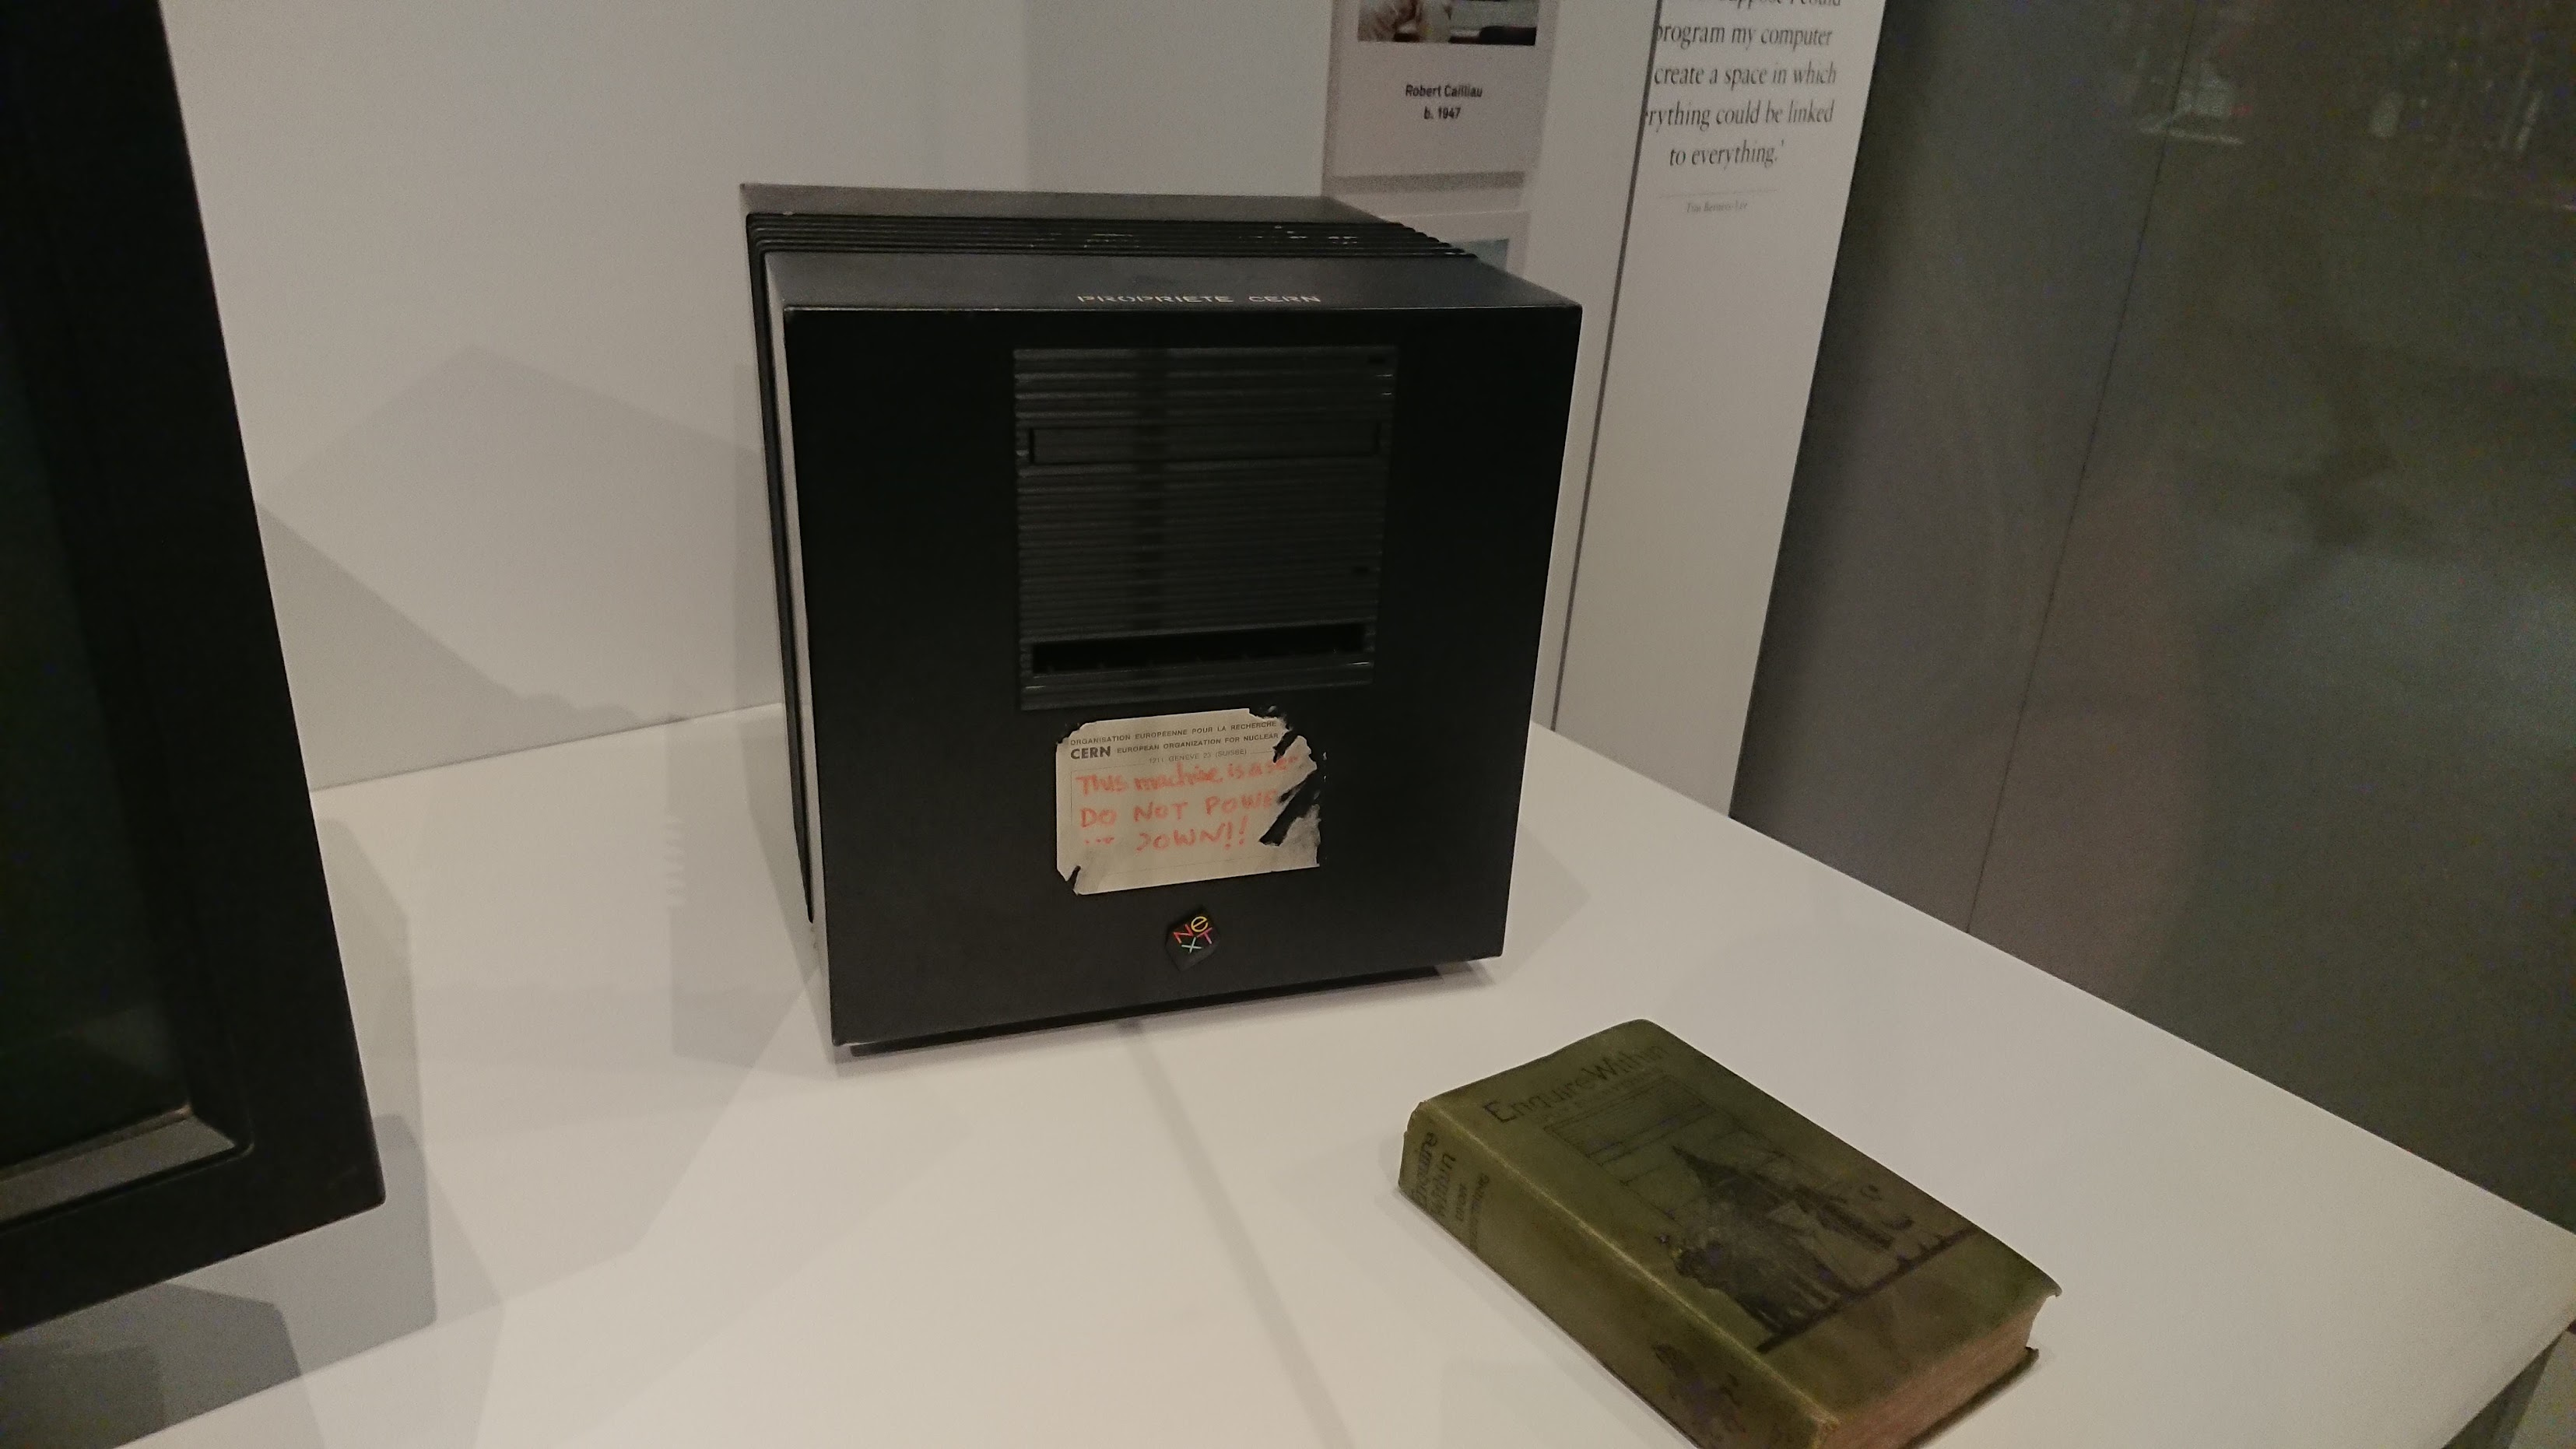 The first webserver, from Cern